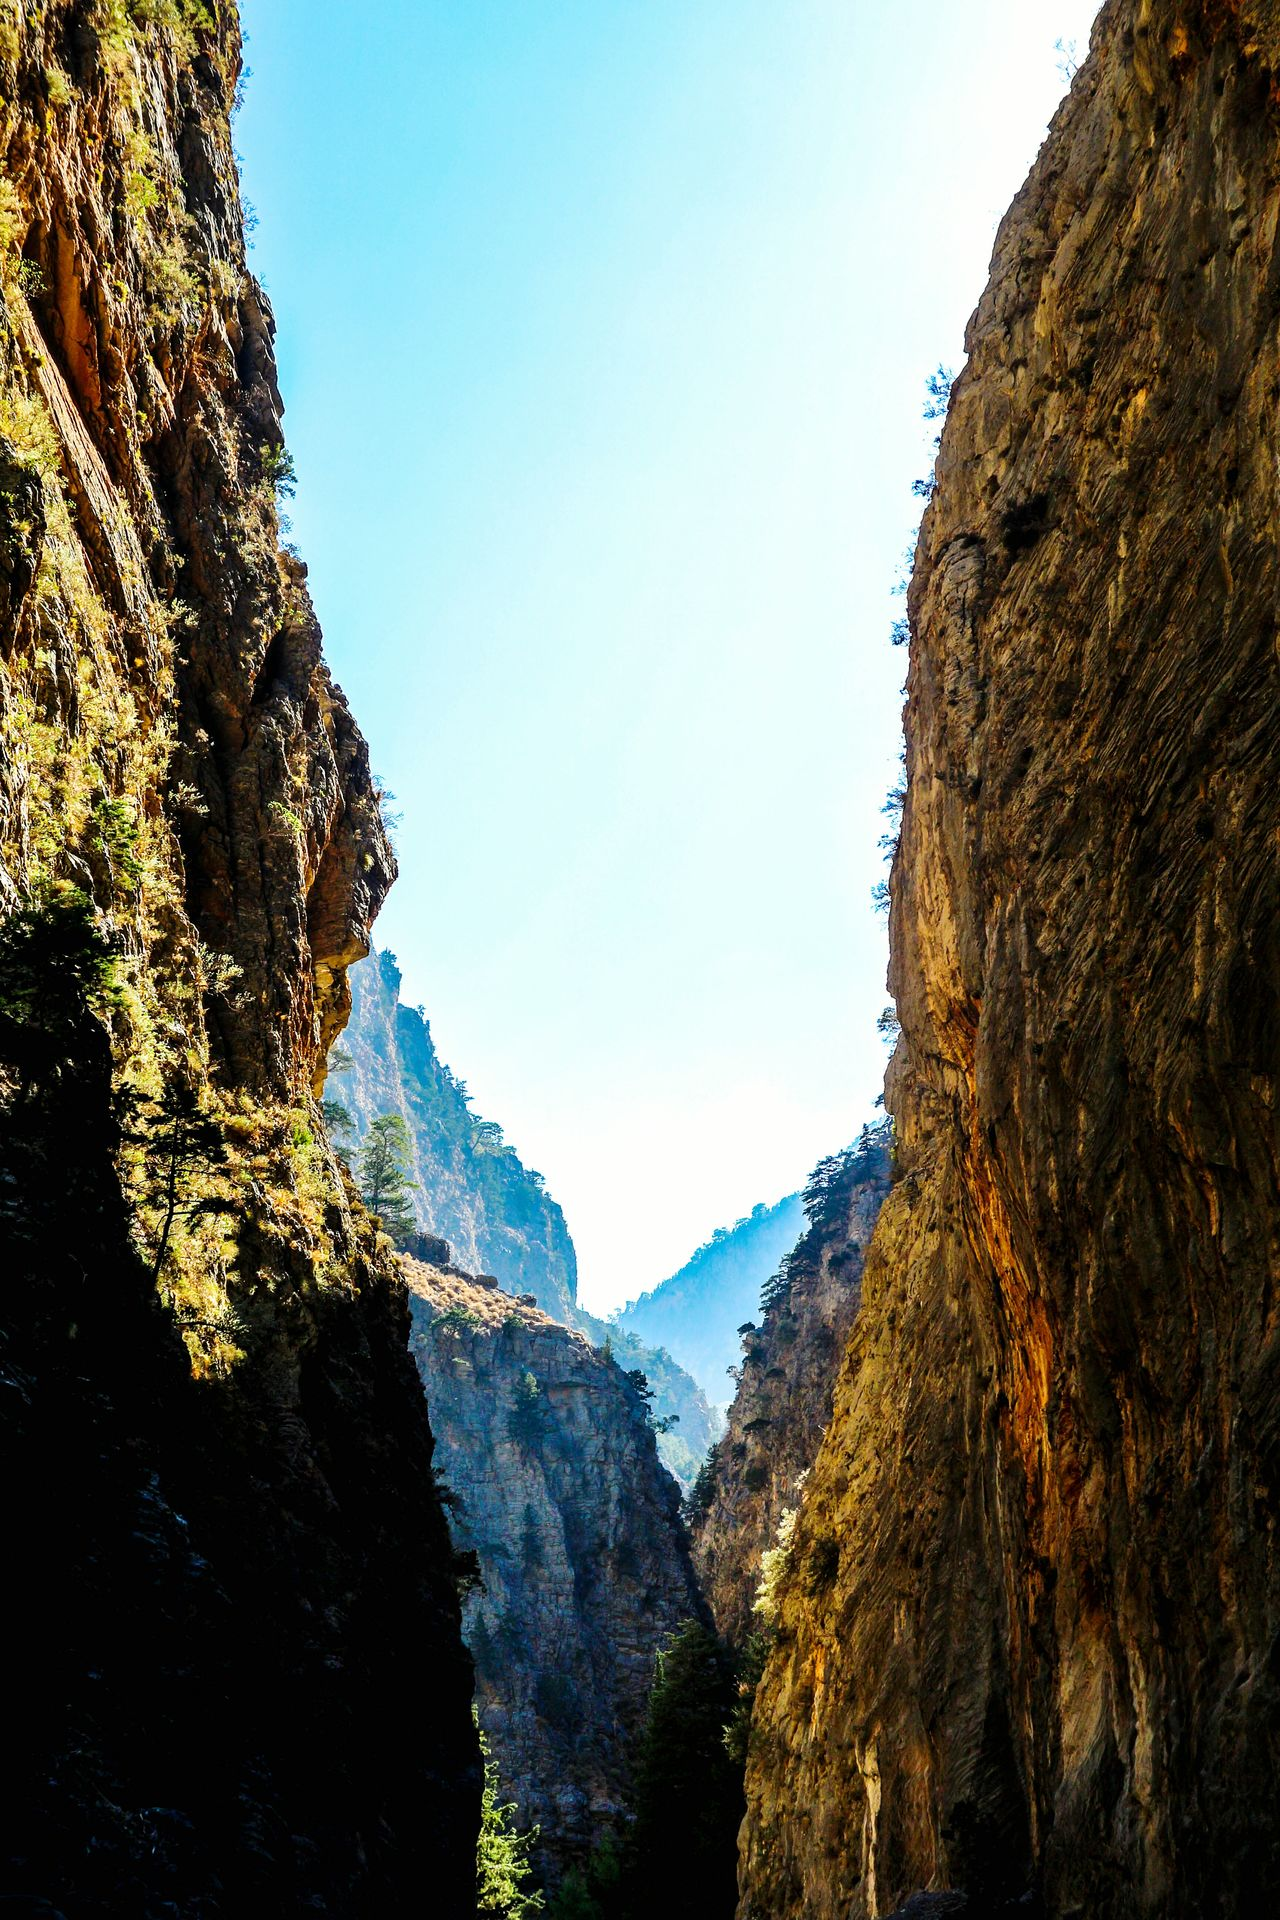 Nature No People Outdoors Beauty In Nature Greece Crete Samaria Gorge Rocks Gorge Canyon Felswand Mountain Schlucht The Way Forward